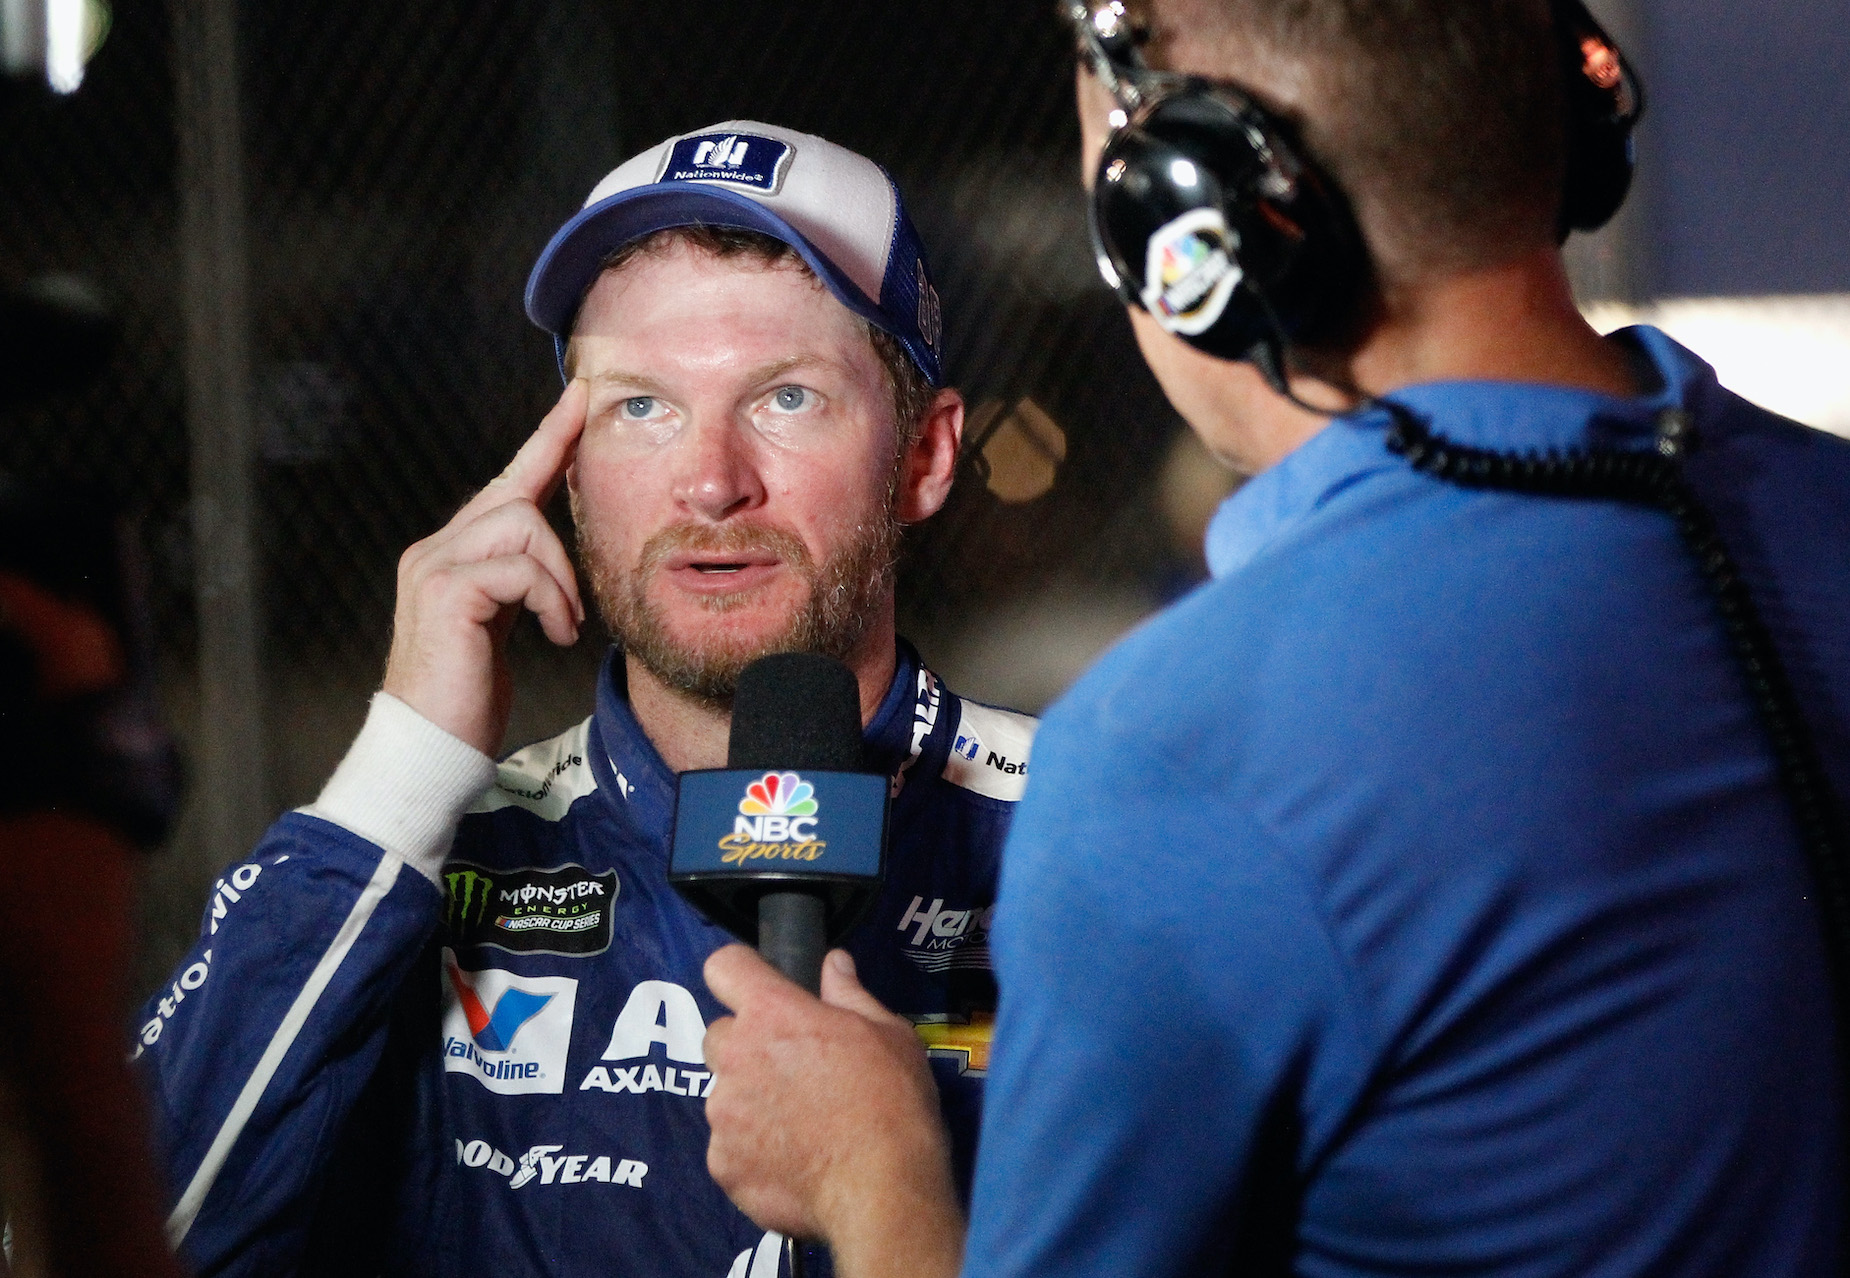 Dale Earnhardt Jr. learned what it meant to be a NASCAR star before he even made his Cup Series Debut.